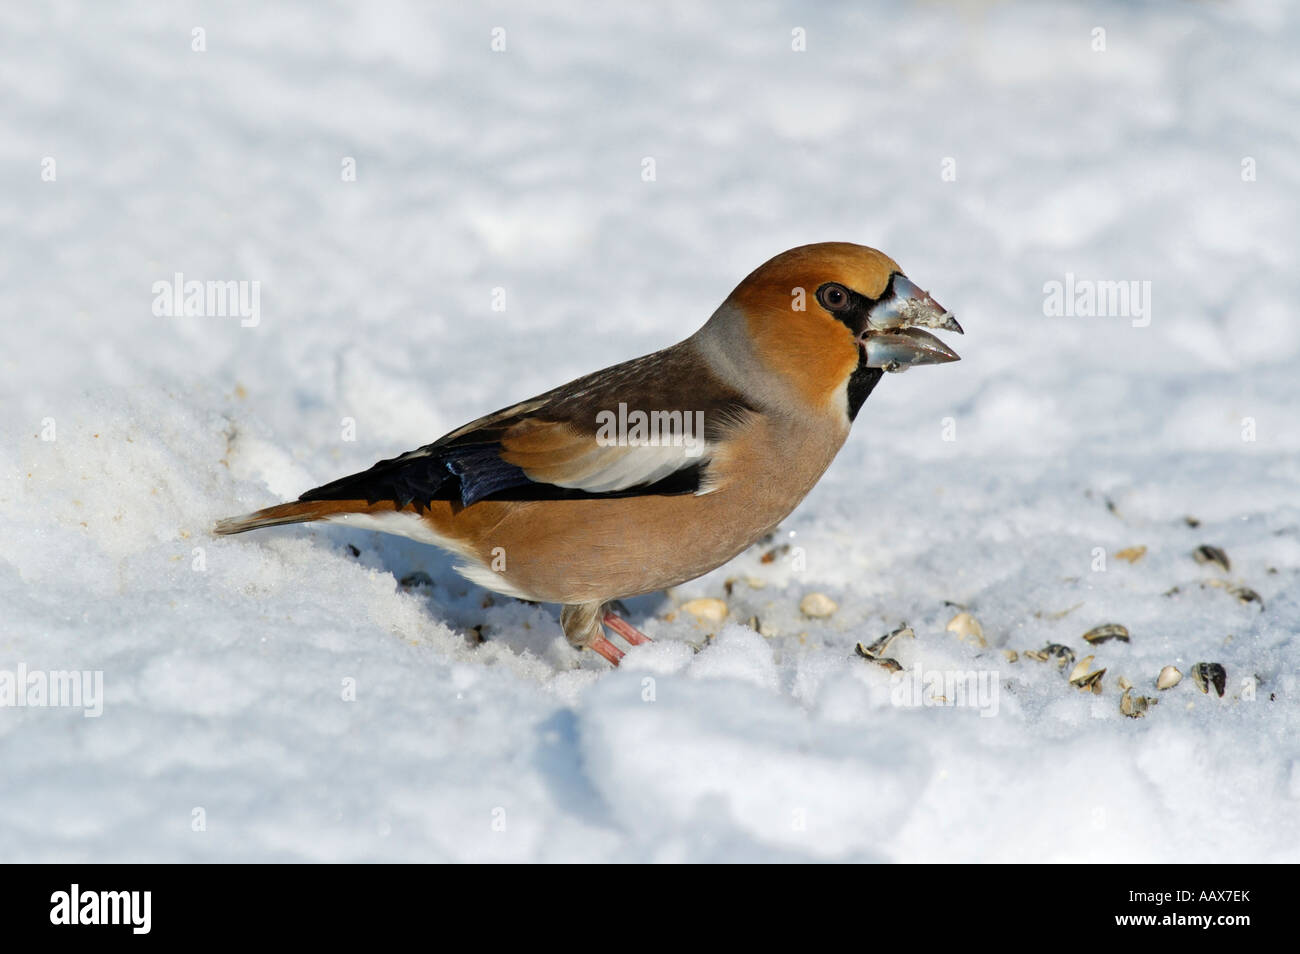 Kernbeißer Coccothraustes coccothraustes Hawfinch - Stock Image